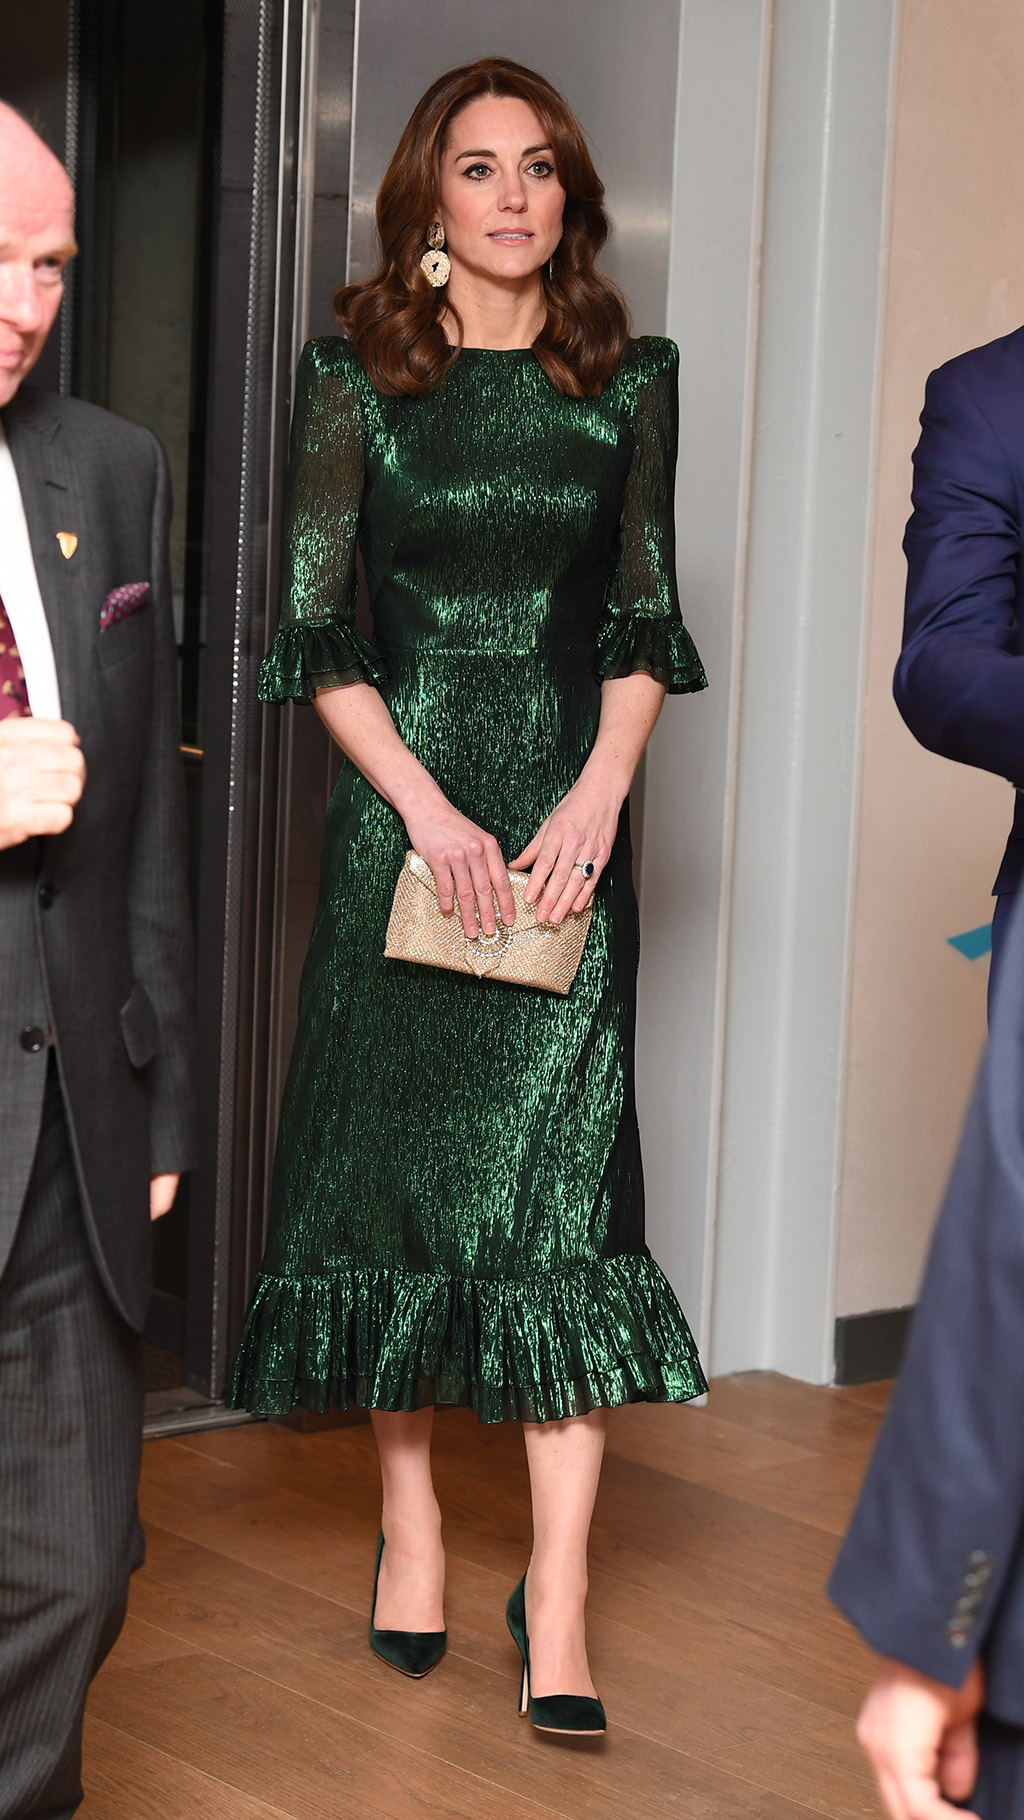 kate middleton, Wilber & Gussie, clutch, The Vampire's Wife dress, green dress, manolo blahnik heels, The Duke and Duchess of Cambridge attend a reception at the Guinness Storehouse's Gravity Bar, hosted by the British Ambassador to Ireland, on the first day of their 3 day visit to Ireland, in Dublin, Ireland, on the 3rd March 2020. 03 Mar 2020 Pictured: The Duke and Duchess of Cambridge attend a reception at the Guinness Storehouse's Gravity Bar, hosted by the British Ambassador to Ireland, on the first day of their 3 day visit to Ireland, in Dublin, Ireland, on the 3rd March 2020. Photo credit: James Whatling / MEGA TheMegaAgency.com +1 888 505 6342 (Mega Agency TagID: MEGA623438_001.jpg) [Photo via Mega Agency]